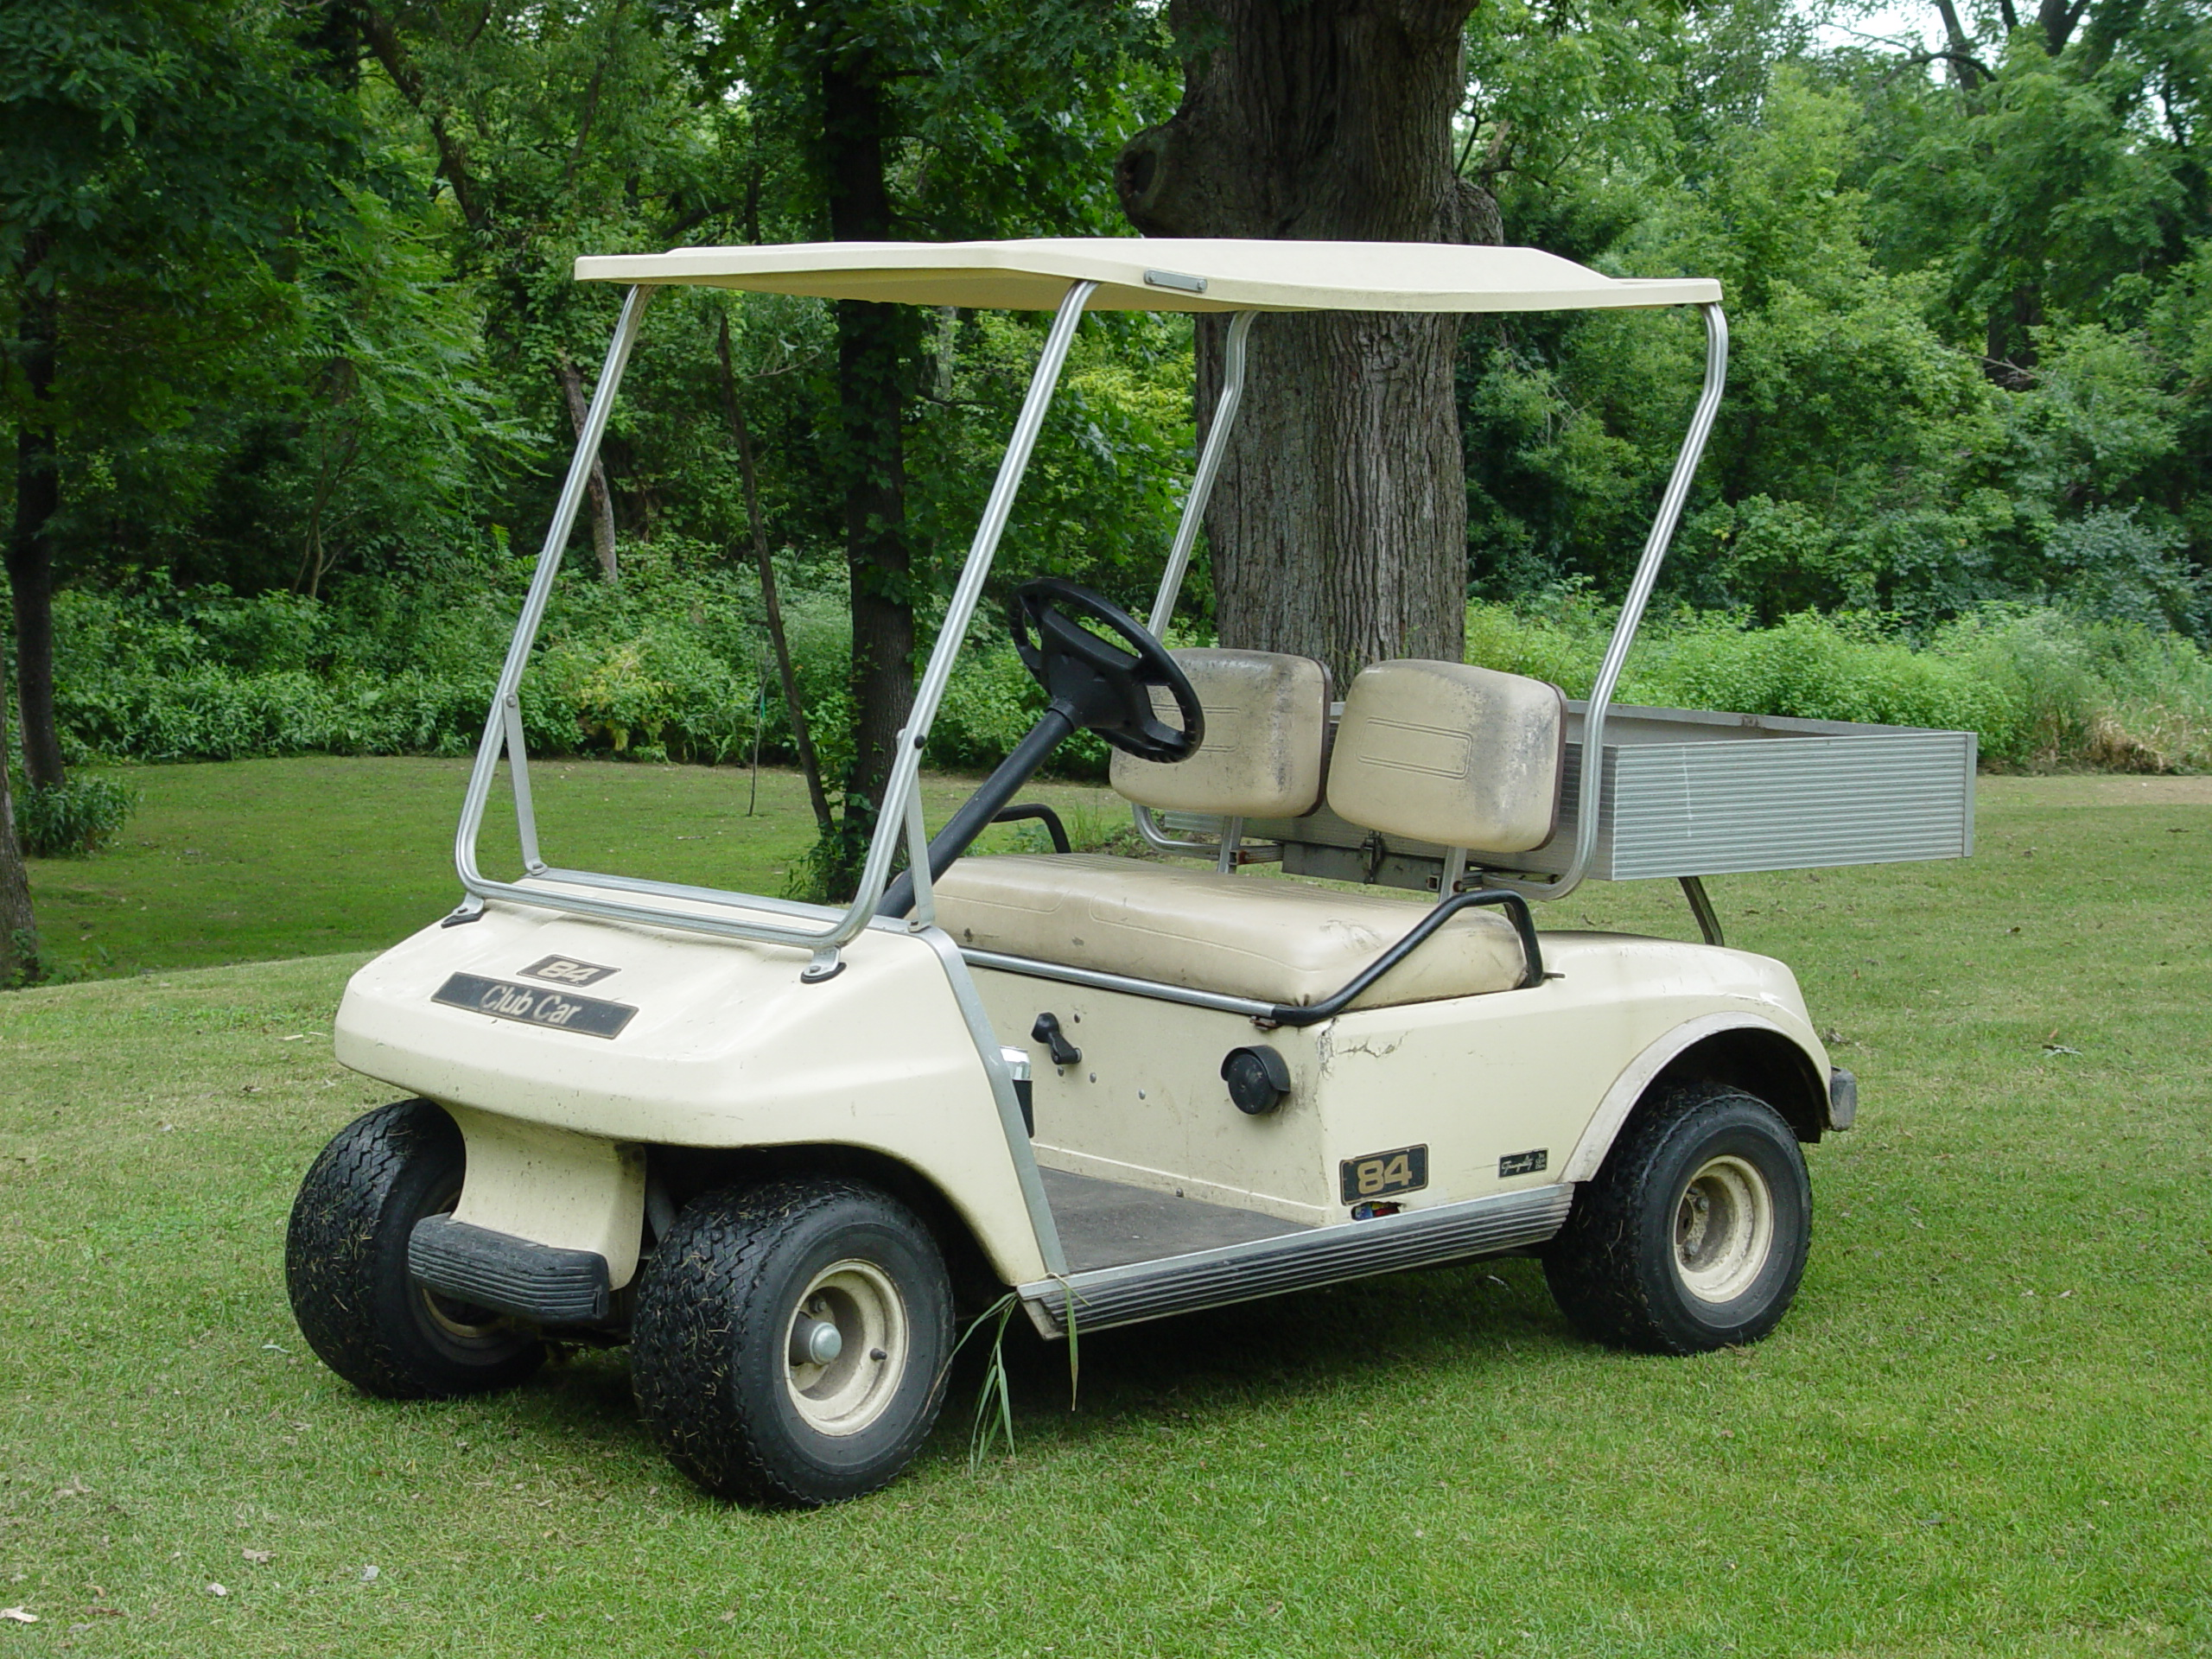 Ordinance drafted to regulate golf carts in Trussville